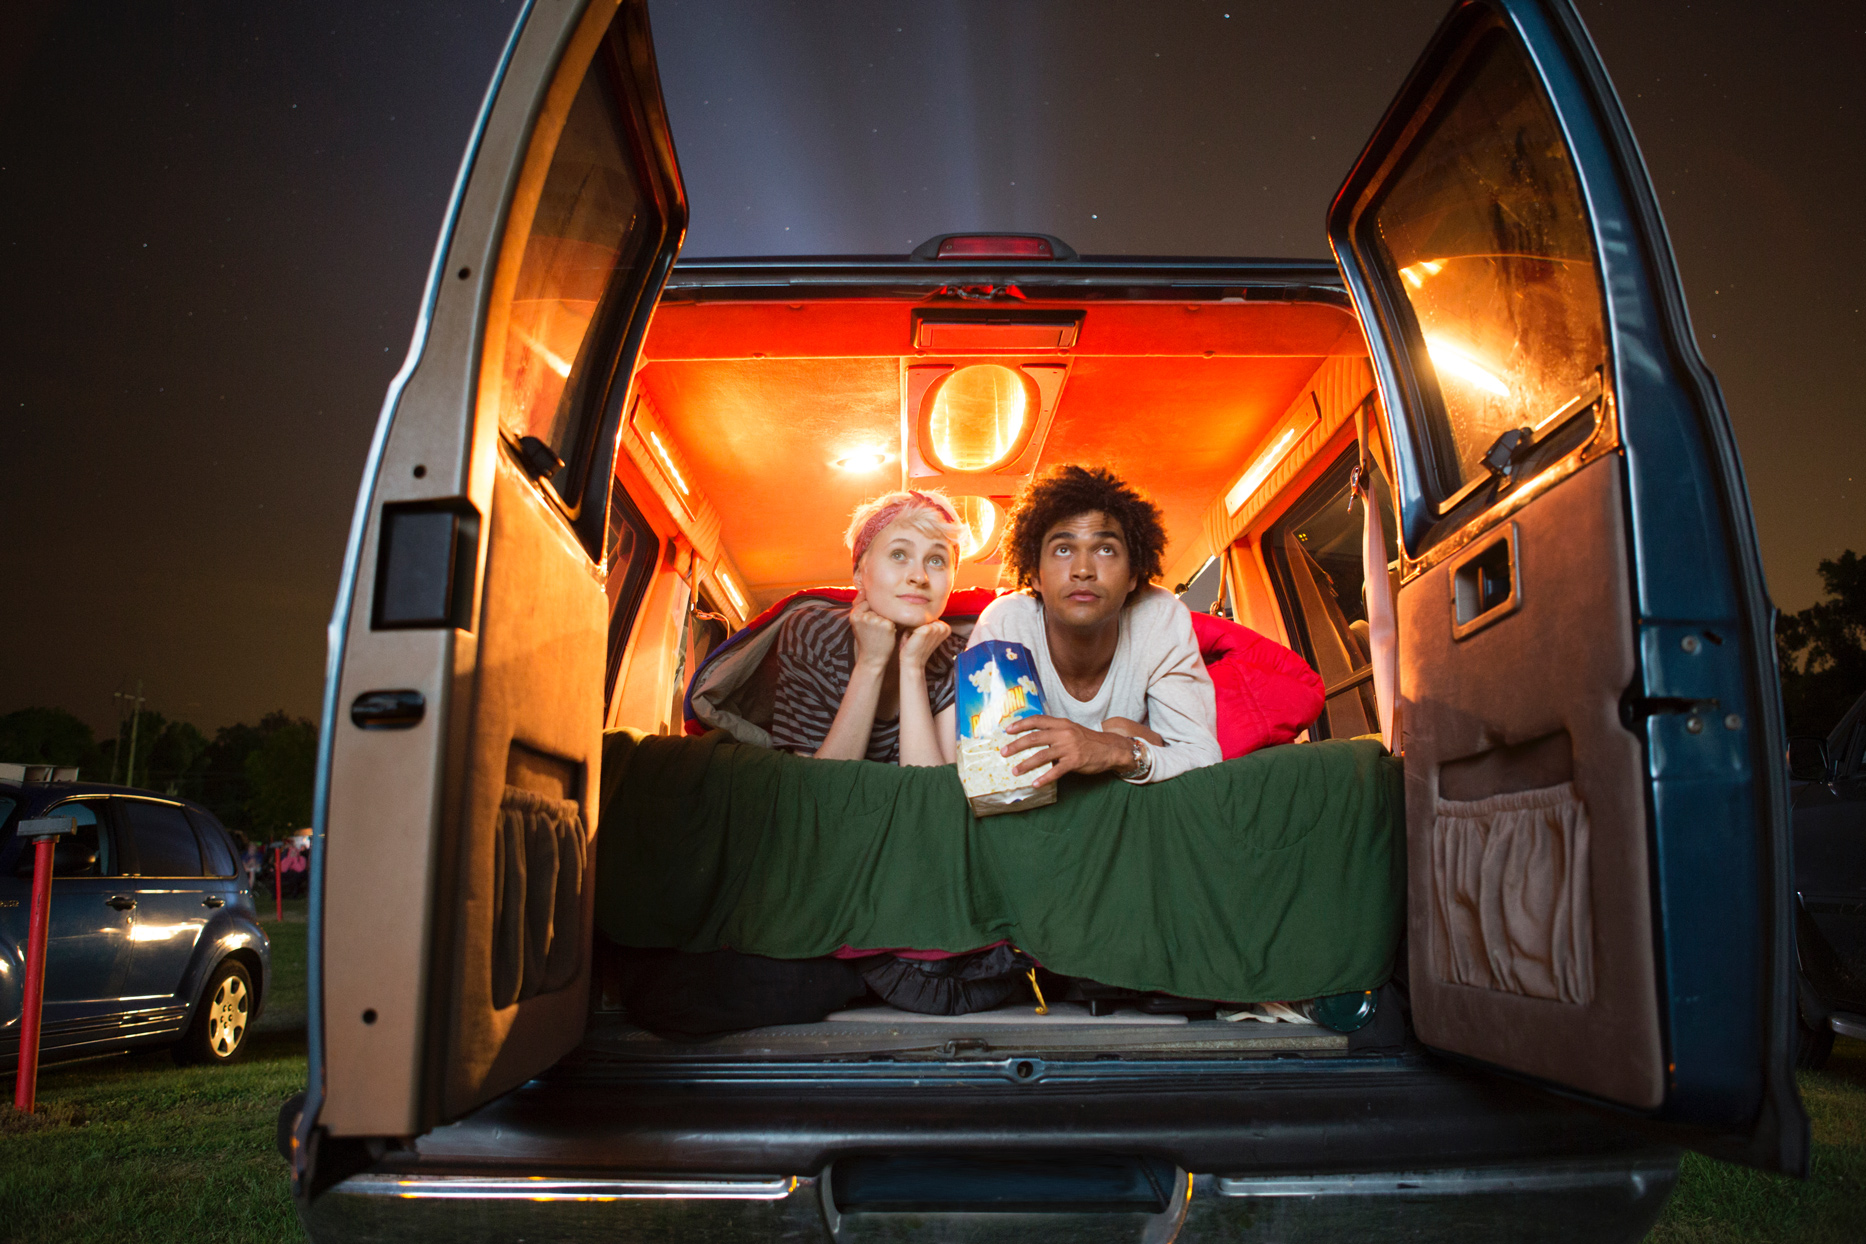 couple laying in back of van at drive in movie theater